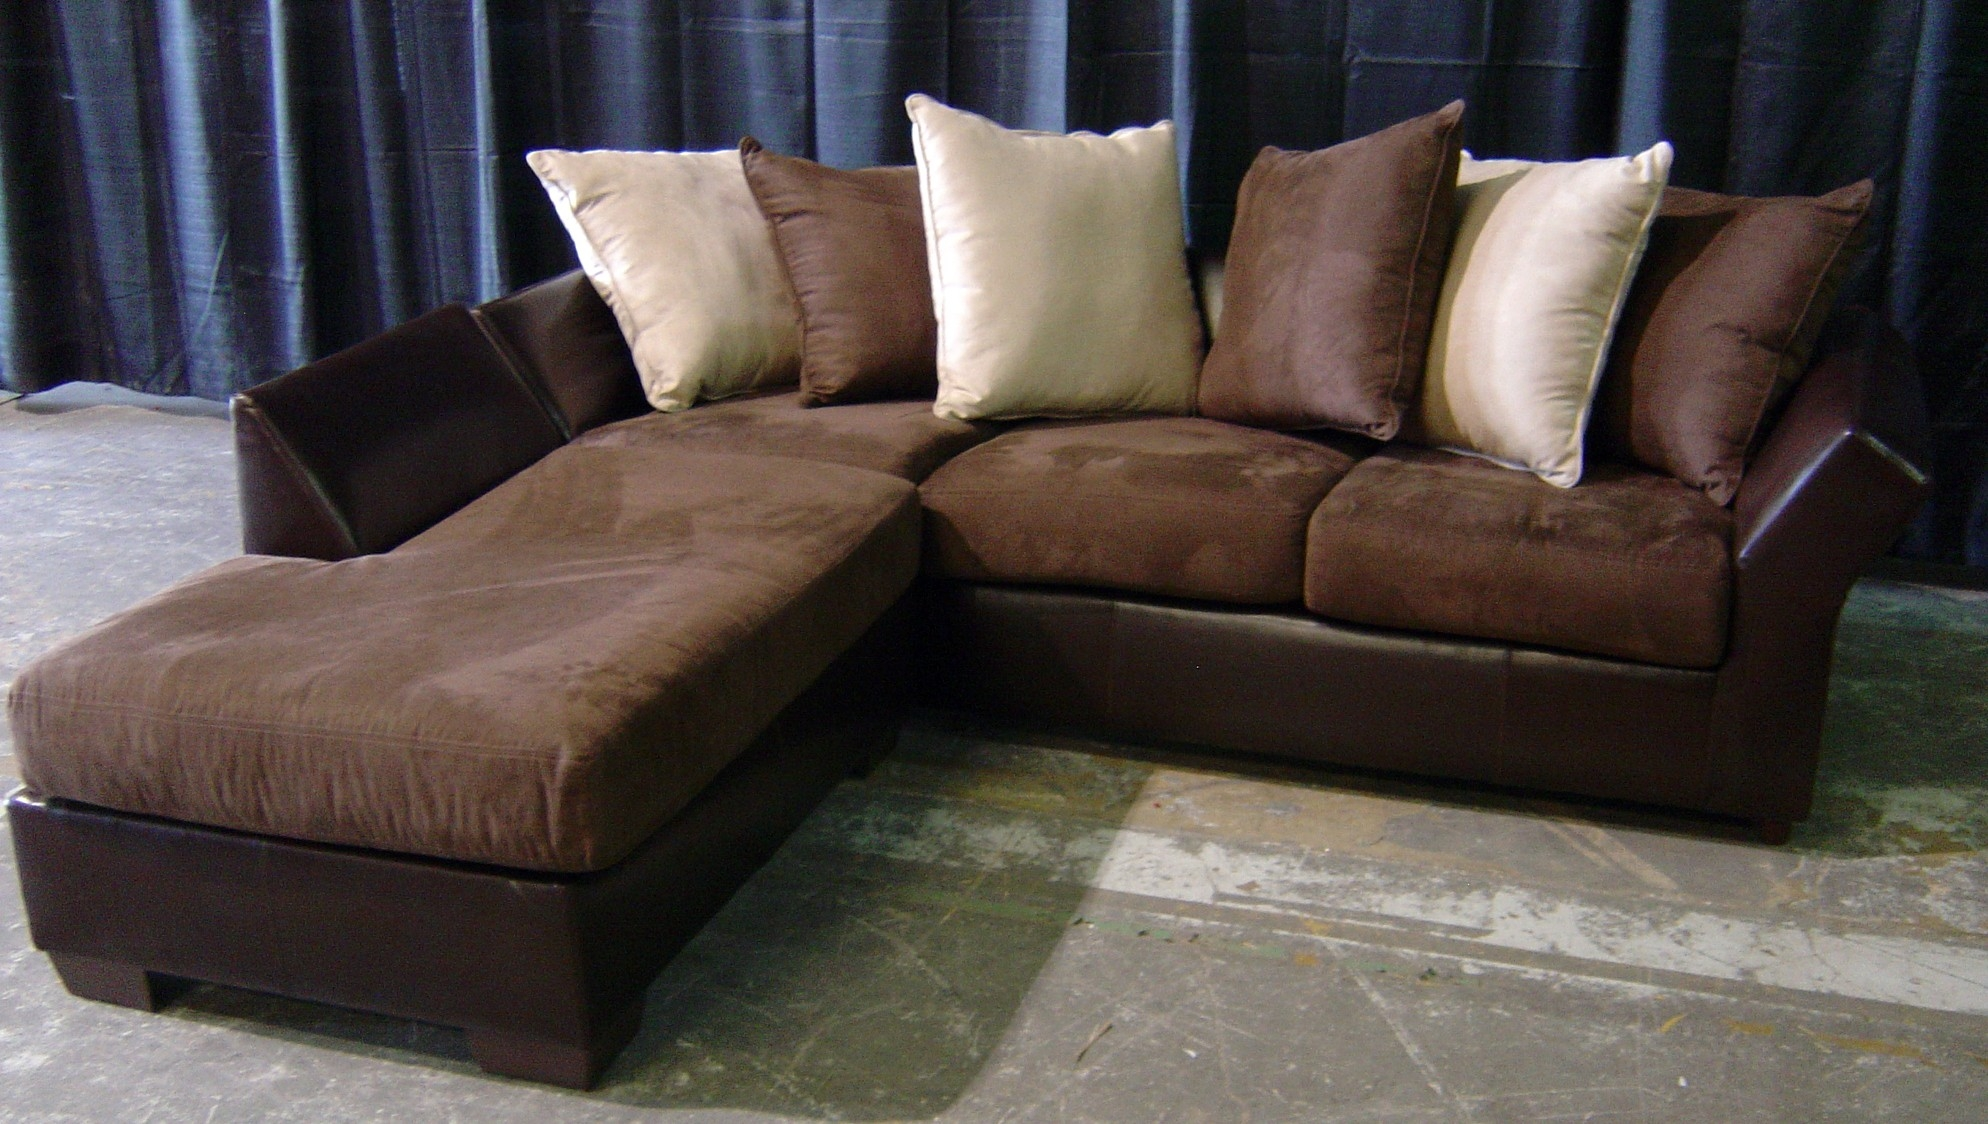 10 Piece Sectional Sofa Hotelsbacau Regarding 10 Piece Sectional Sofa (View 3 of 15)